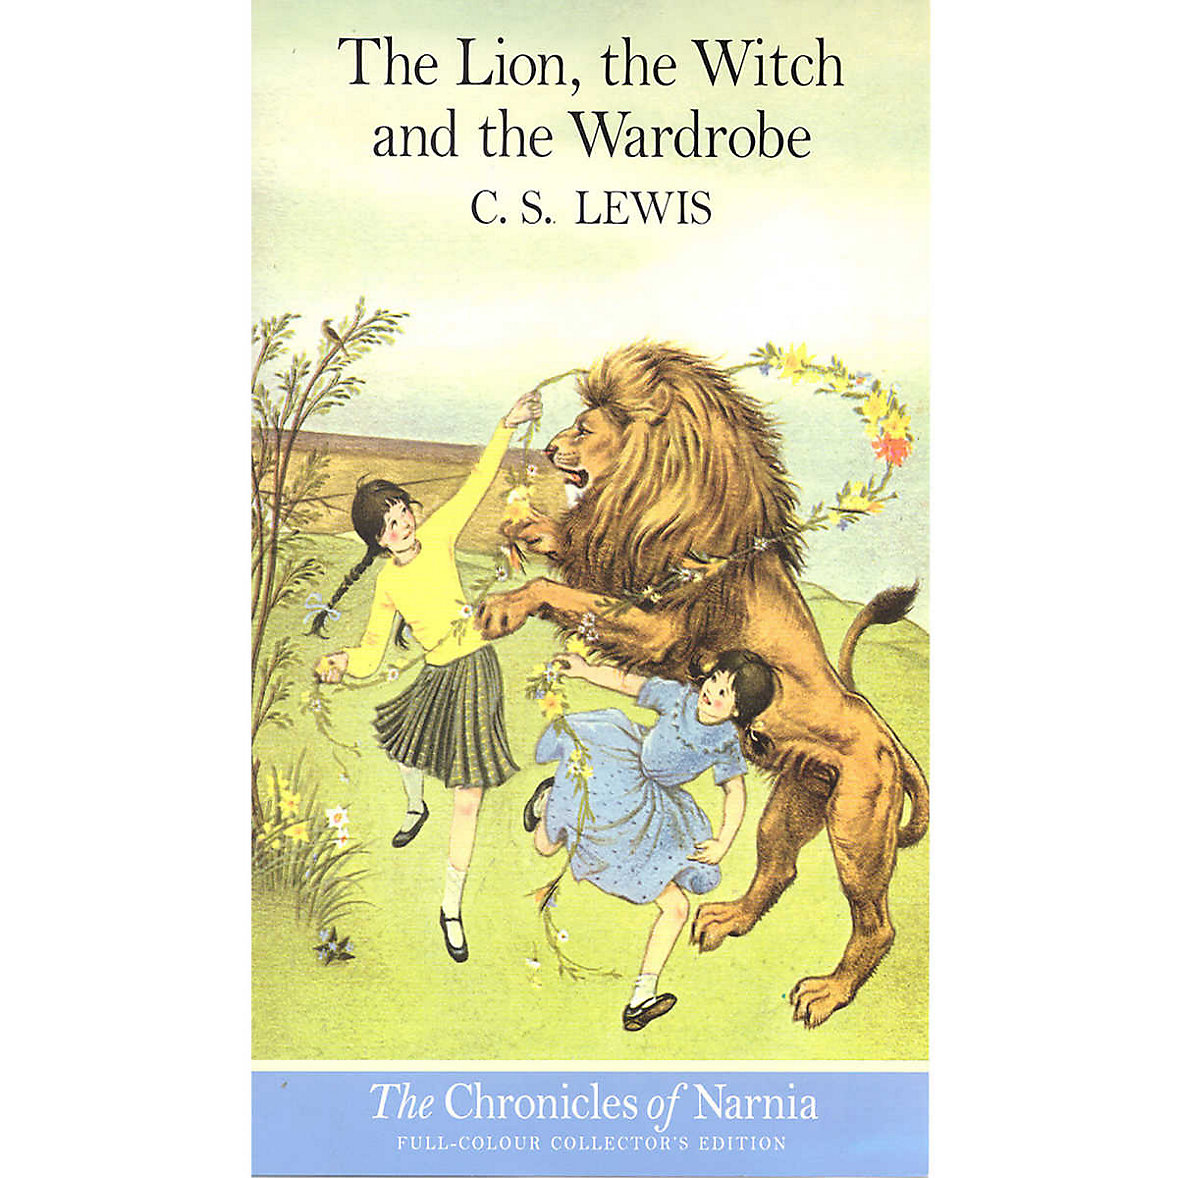 The Lion, the Witch and the Wardrobe - The Chronicles of Narnia - C.S. Lewis